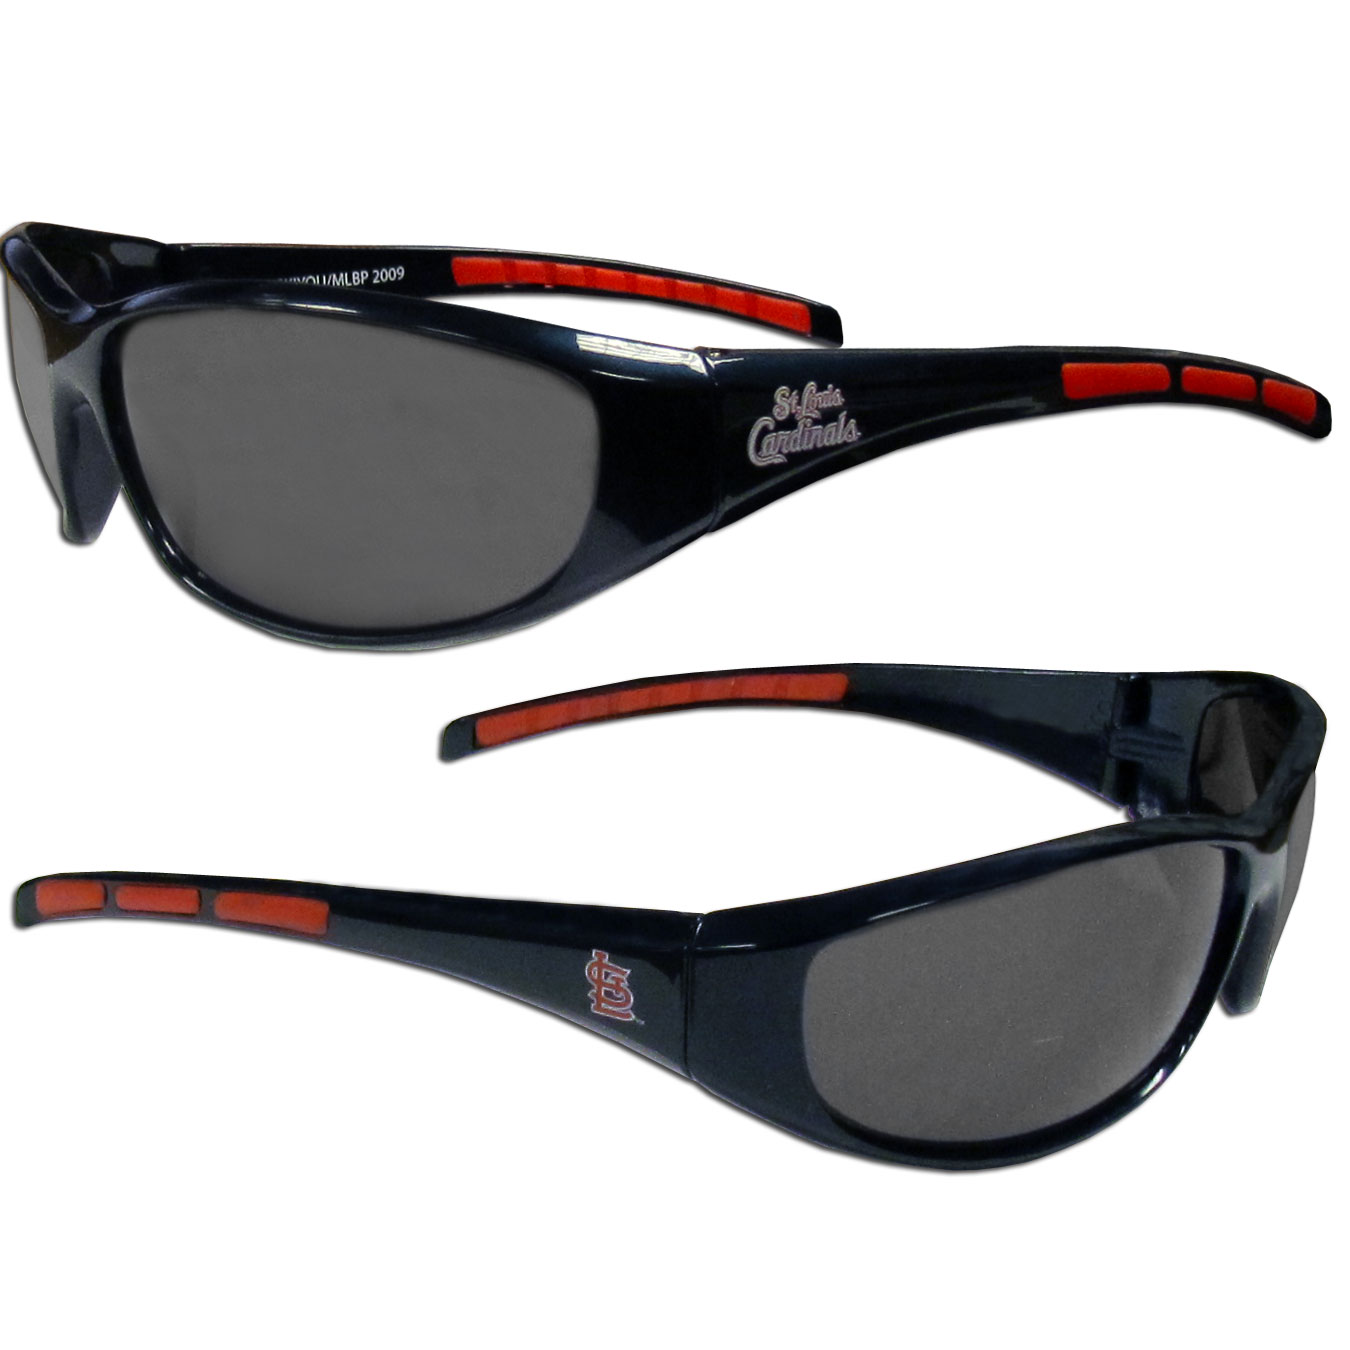 St. Louis Cardinals Official MLB Wrap Sunglasses by Siskiyou 030413